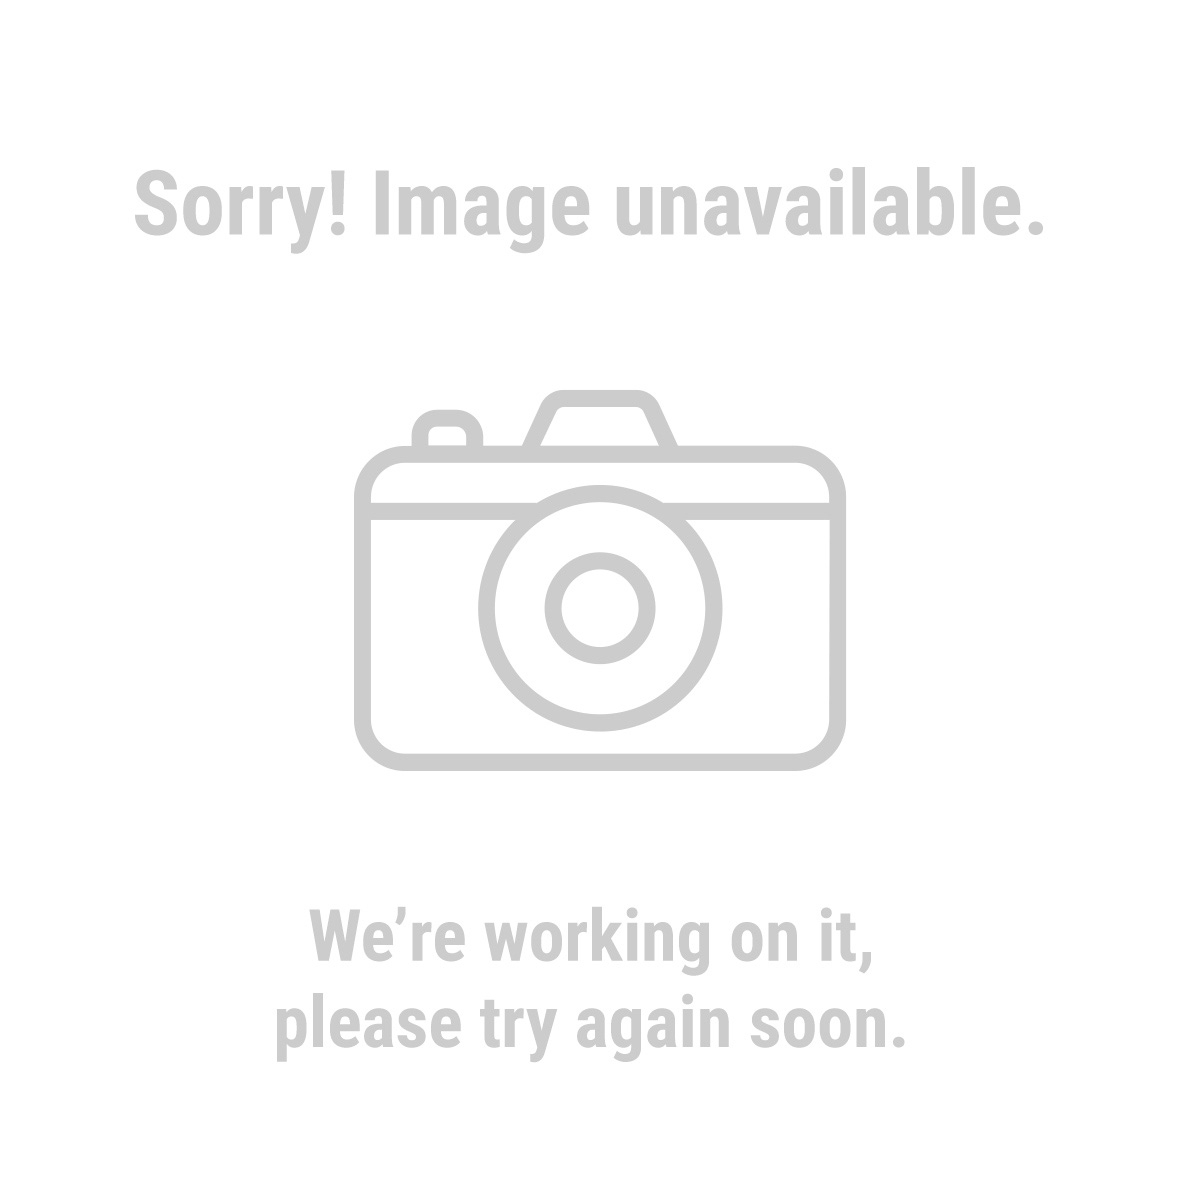 "Warrior 771 4"" Grinding Wheels for Metal - Pack of 10"